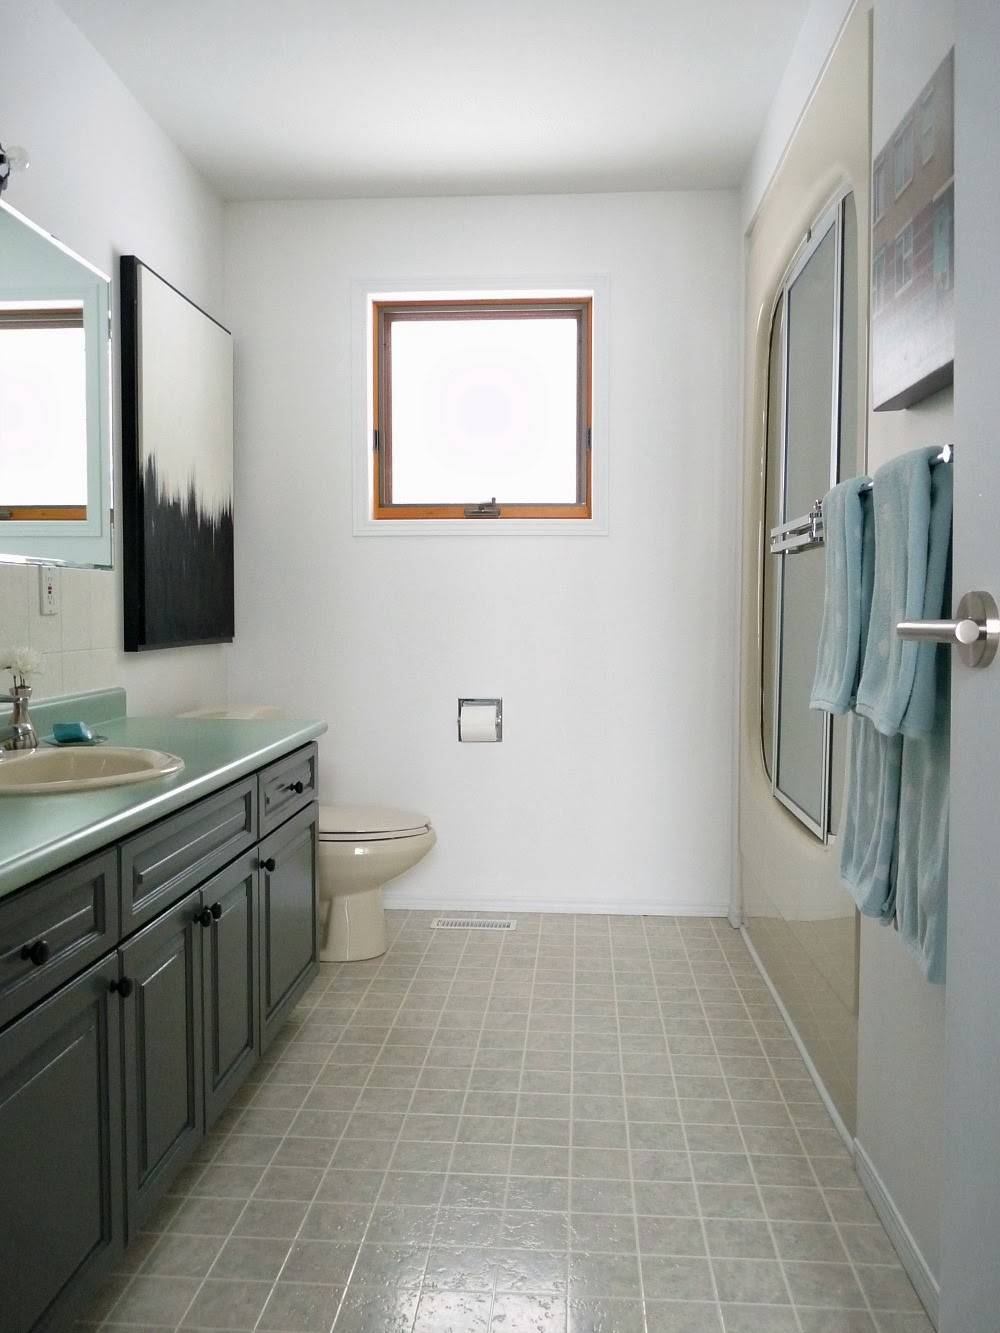 A BudgetFriendly Bathroom Makeover Using Paint Dans Le Lakehouse - Budget friendly bathroom remodels